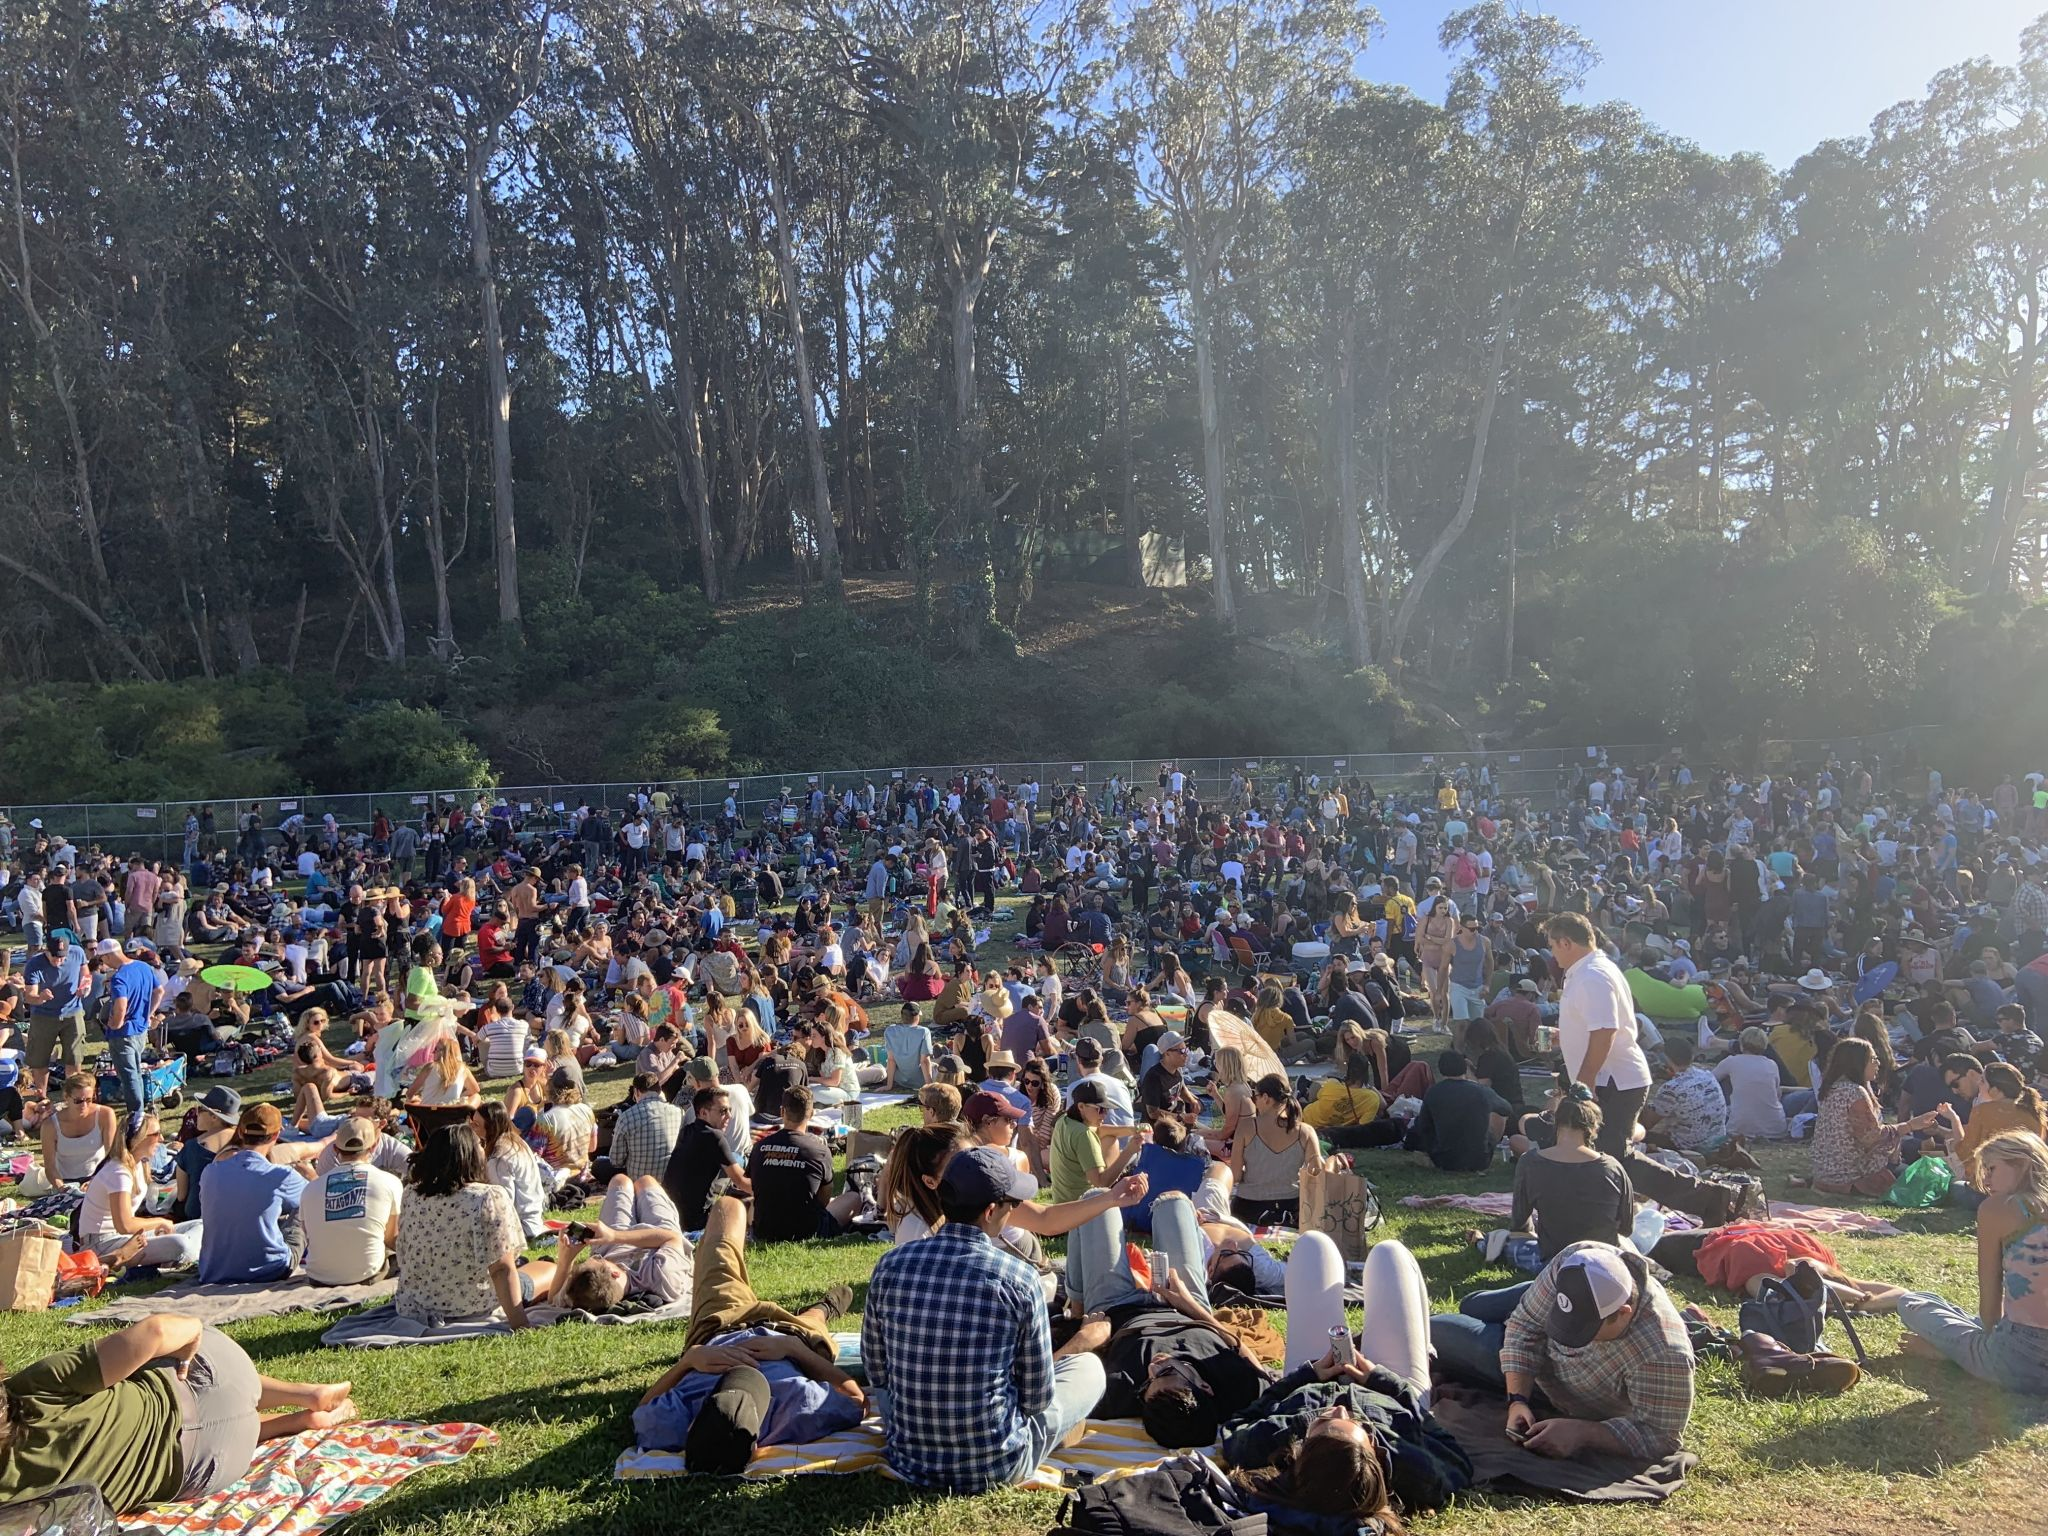 'Why isn't anybody happy?' Huge crowds dampen Hardly Strictly fun